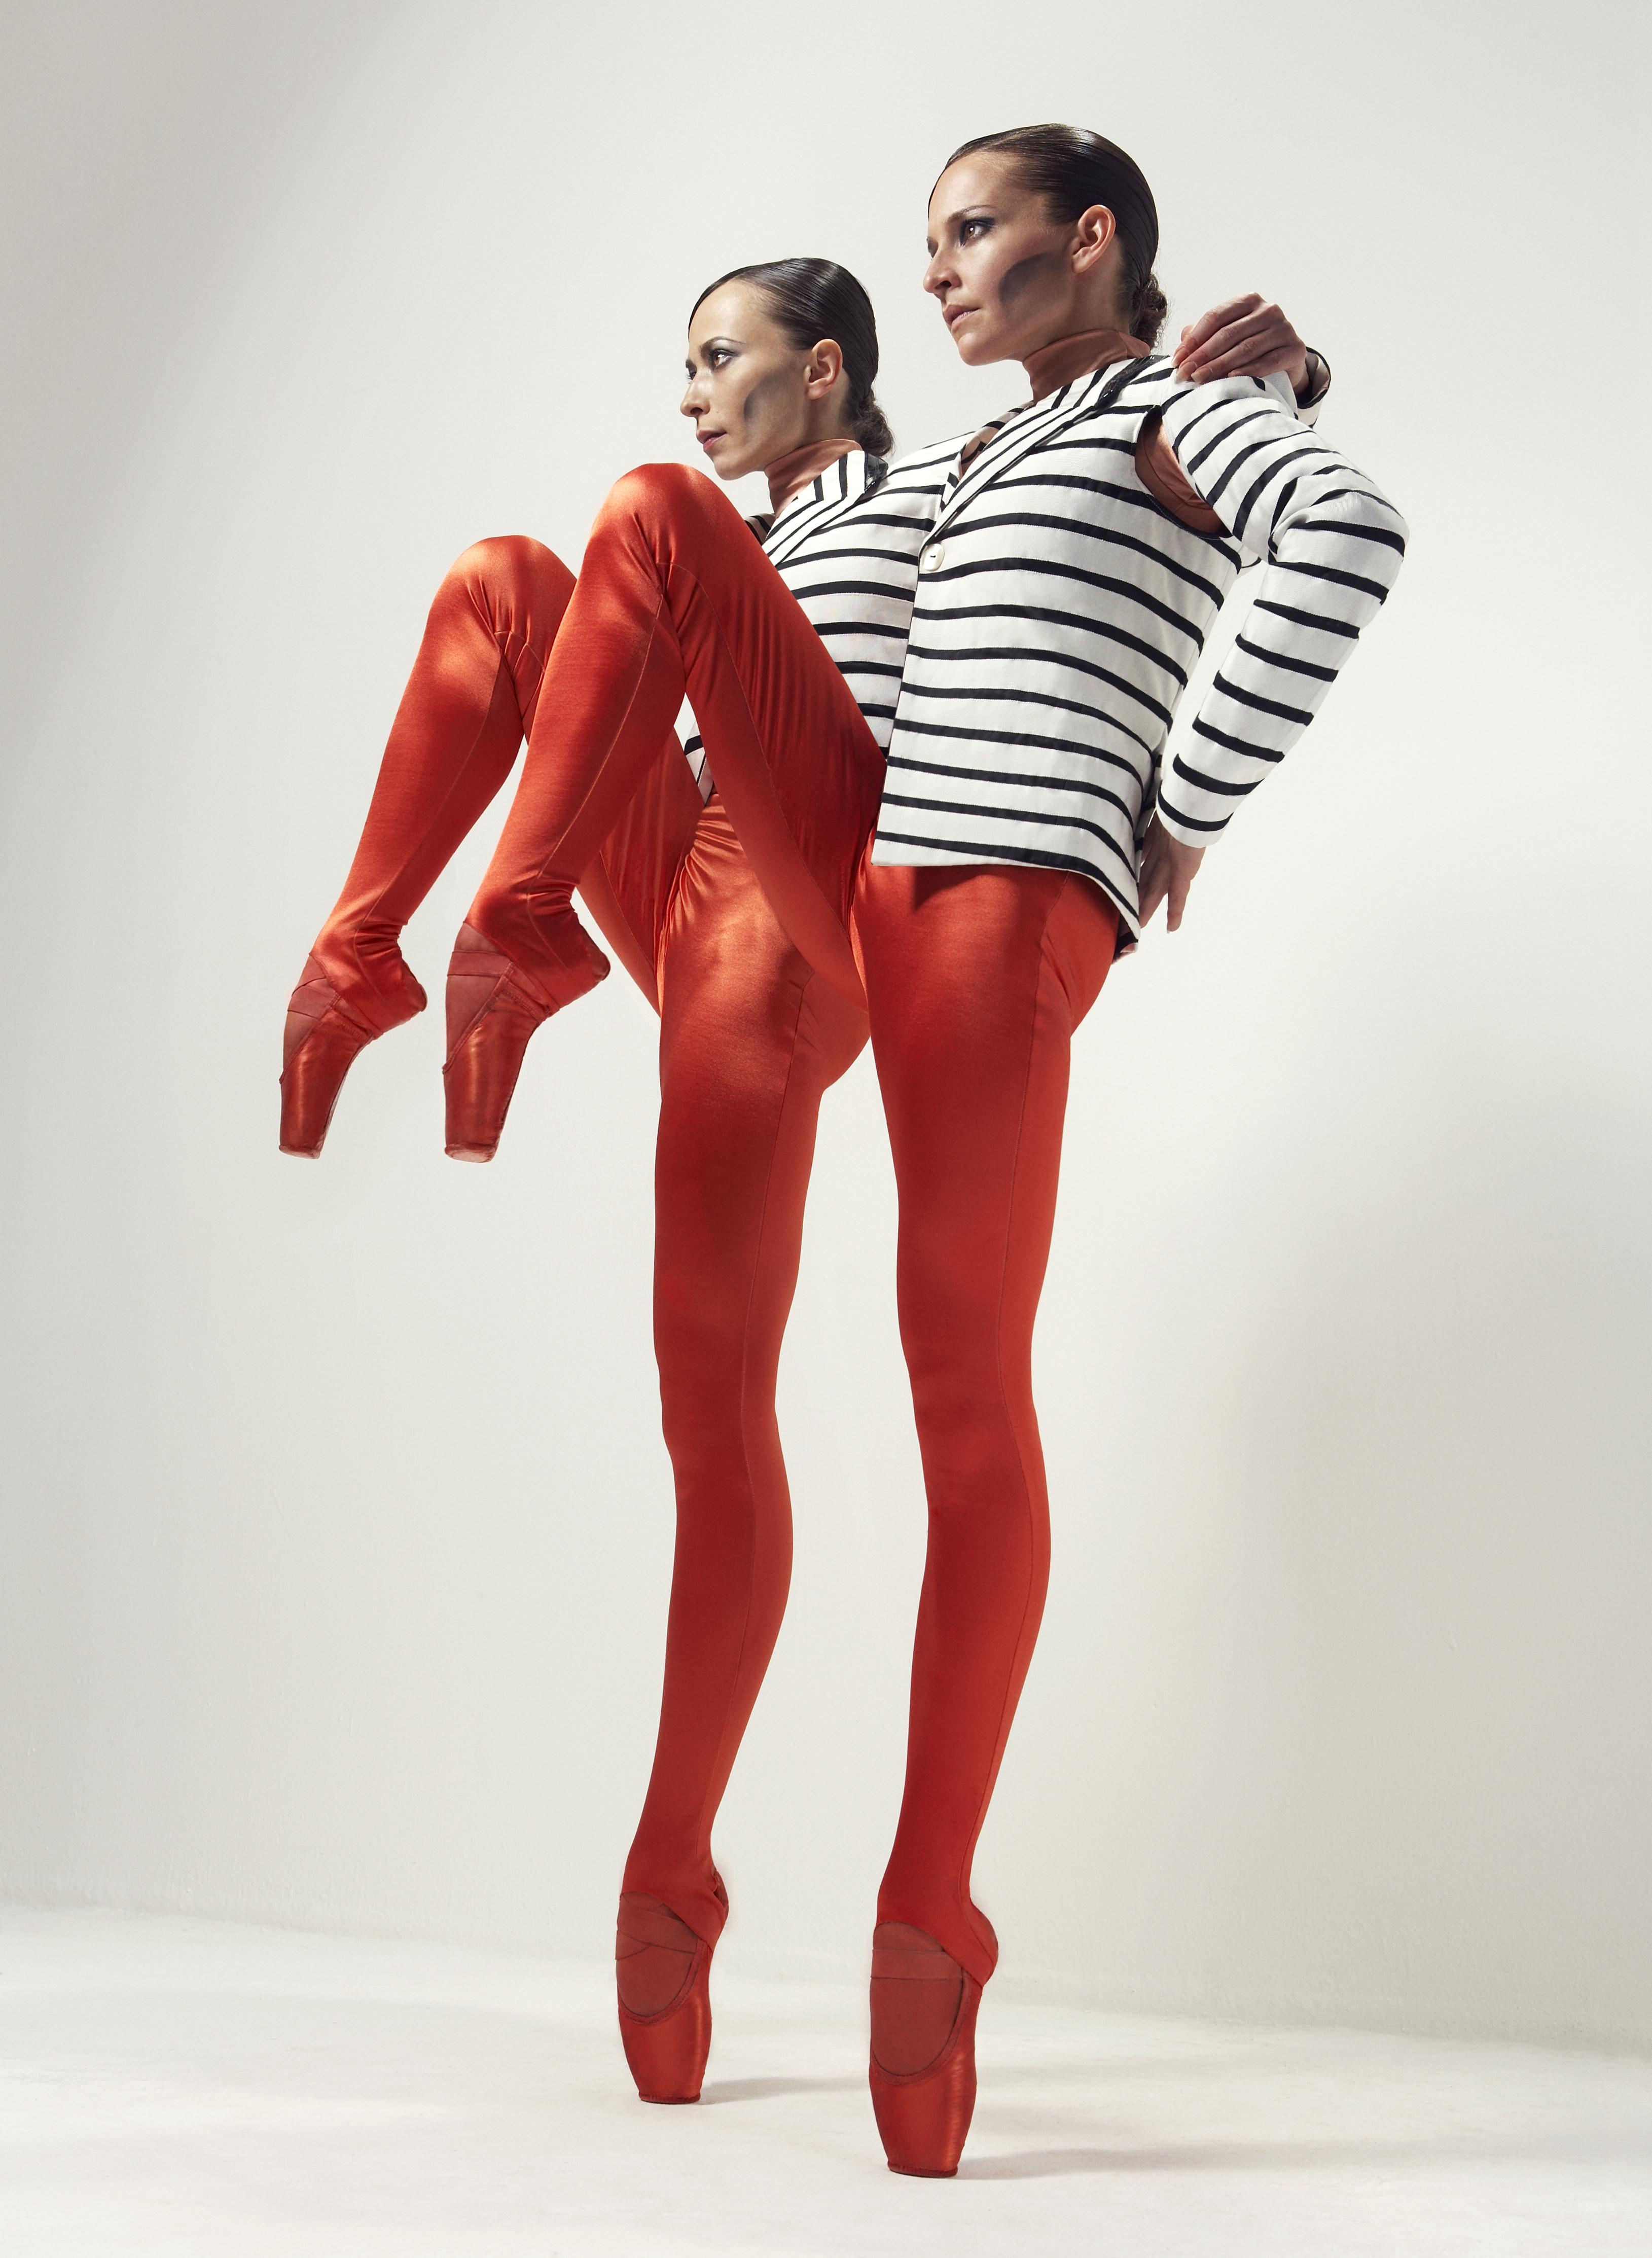 Two identically dressed ballet dancers each stand with one foot on tiptoe and the other leg raised high and bent at the knee.